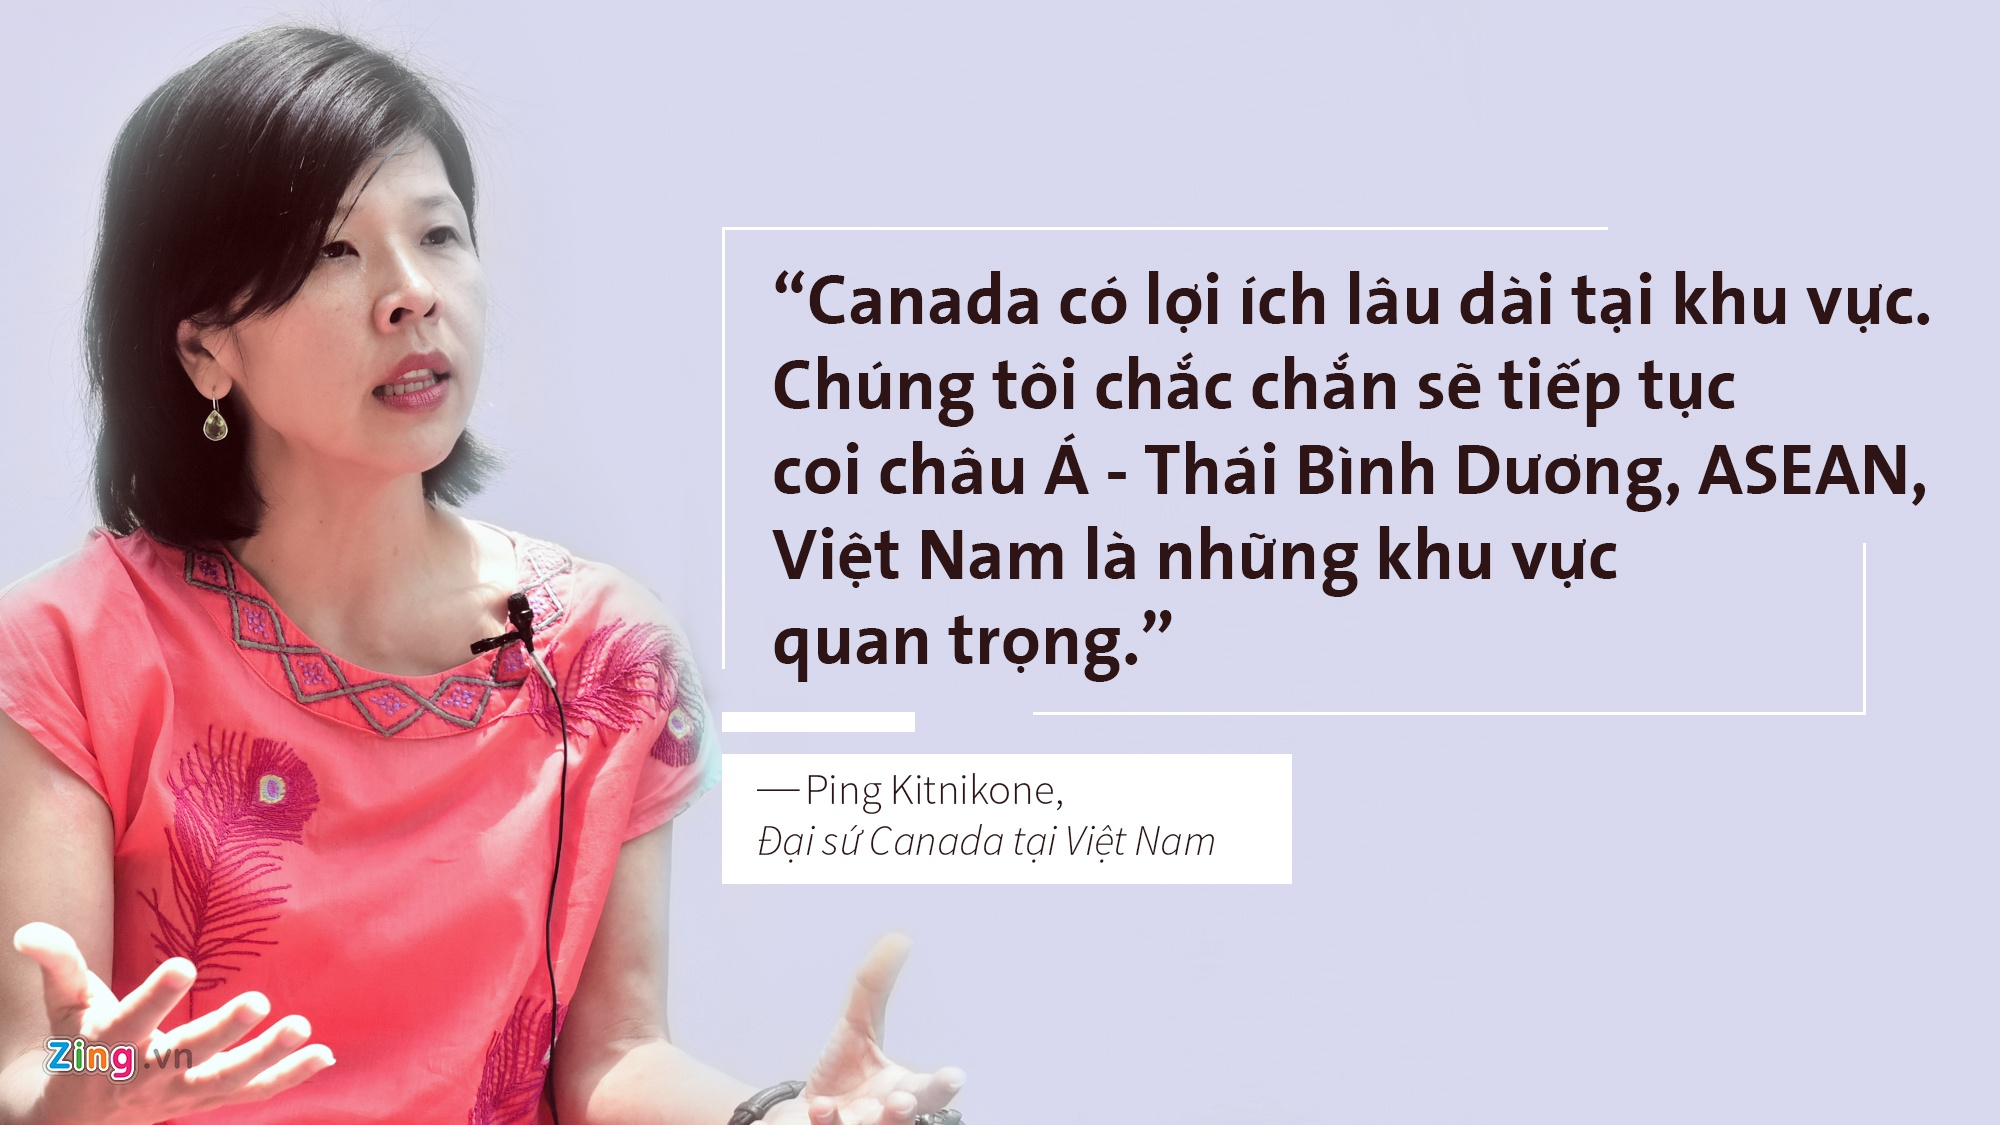 Canada muon thuc day hop tac quoc phong voi Viet Nam hinh anh 9